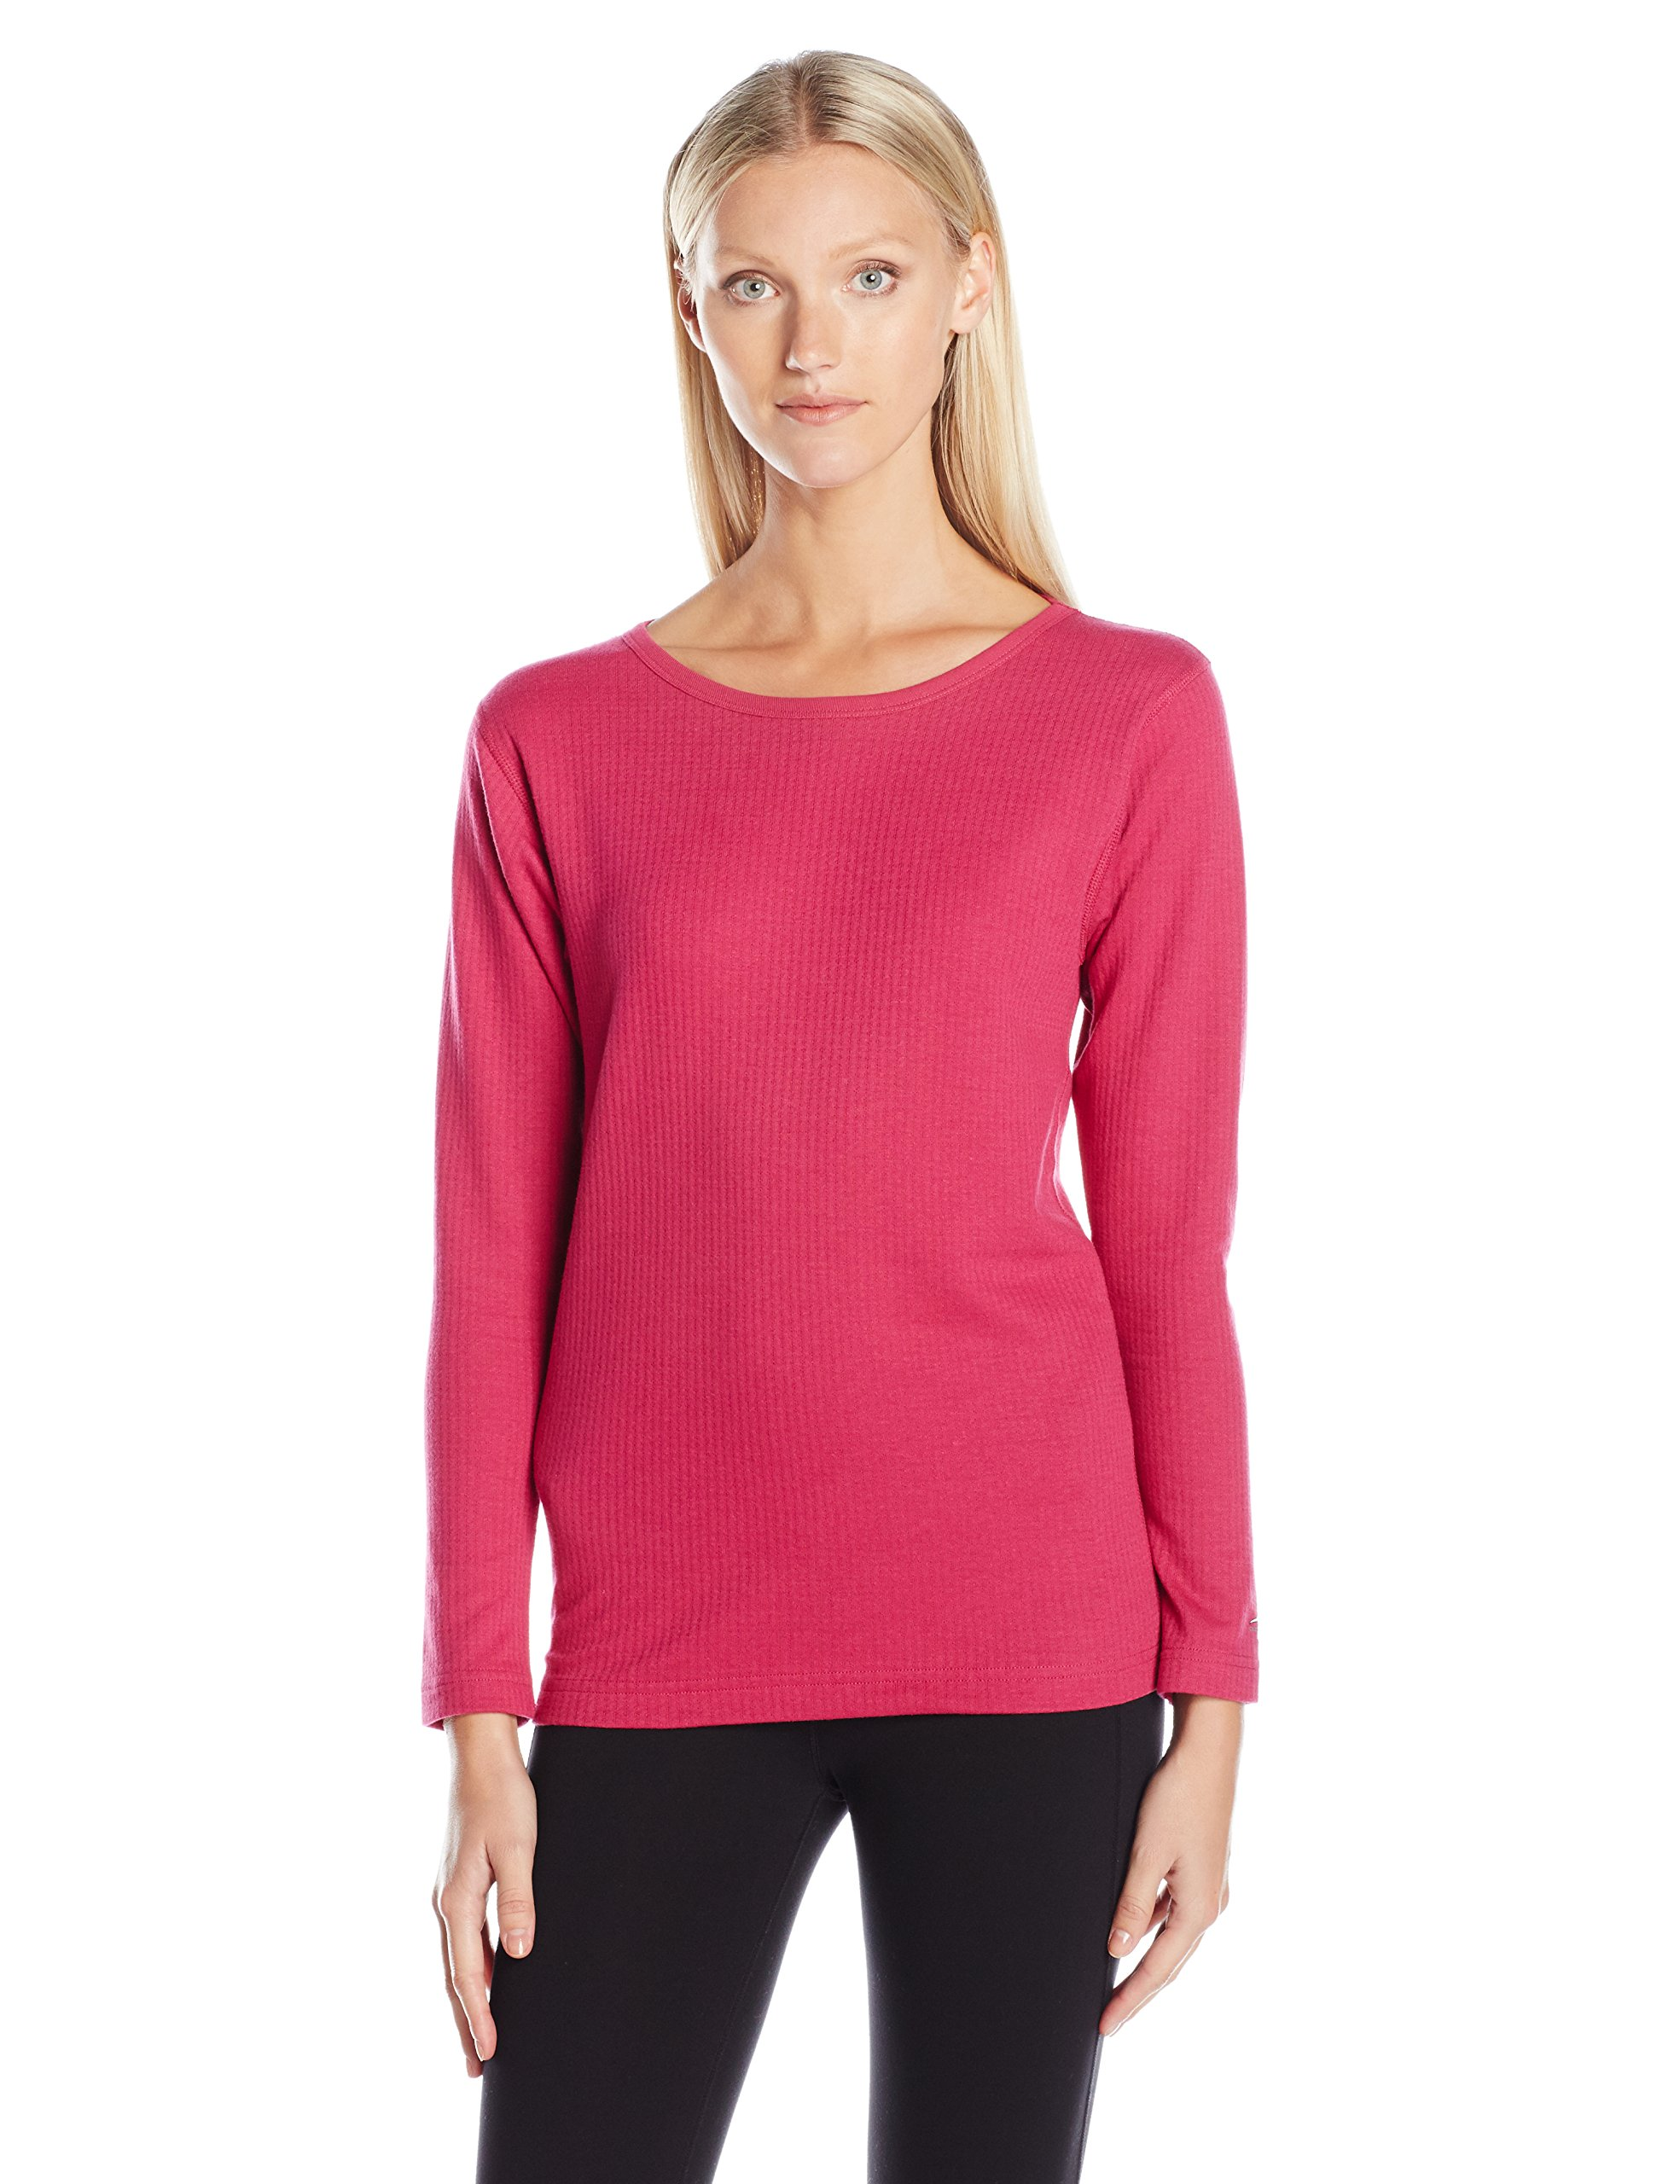 Duofold Women's Mid Weight Wicking Thermal Shirt, Berry Delight, M by Duofold (Image #1)